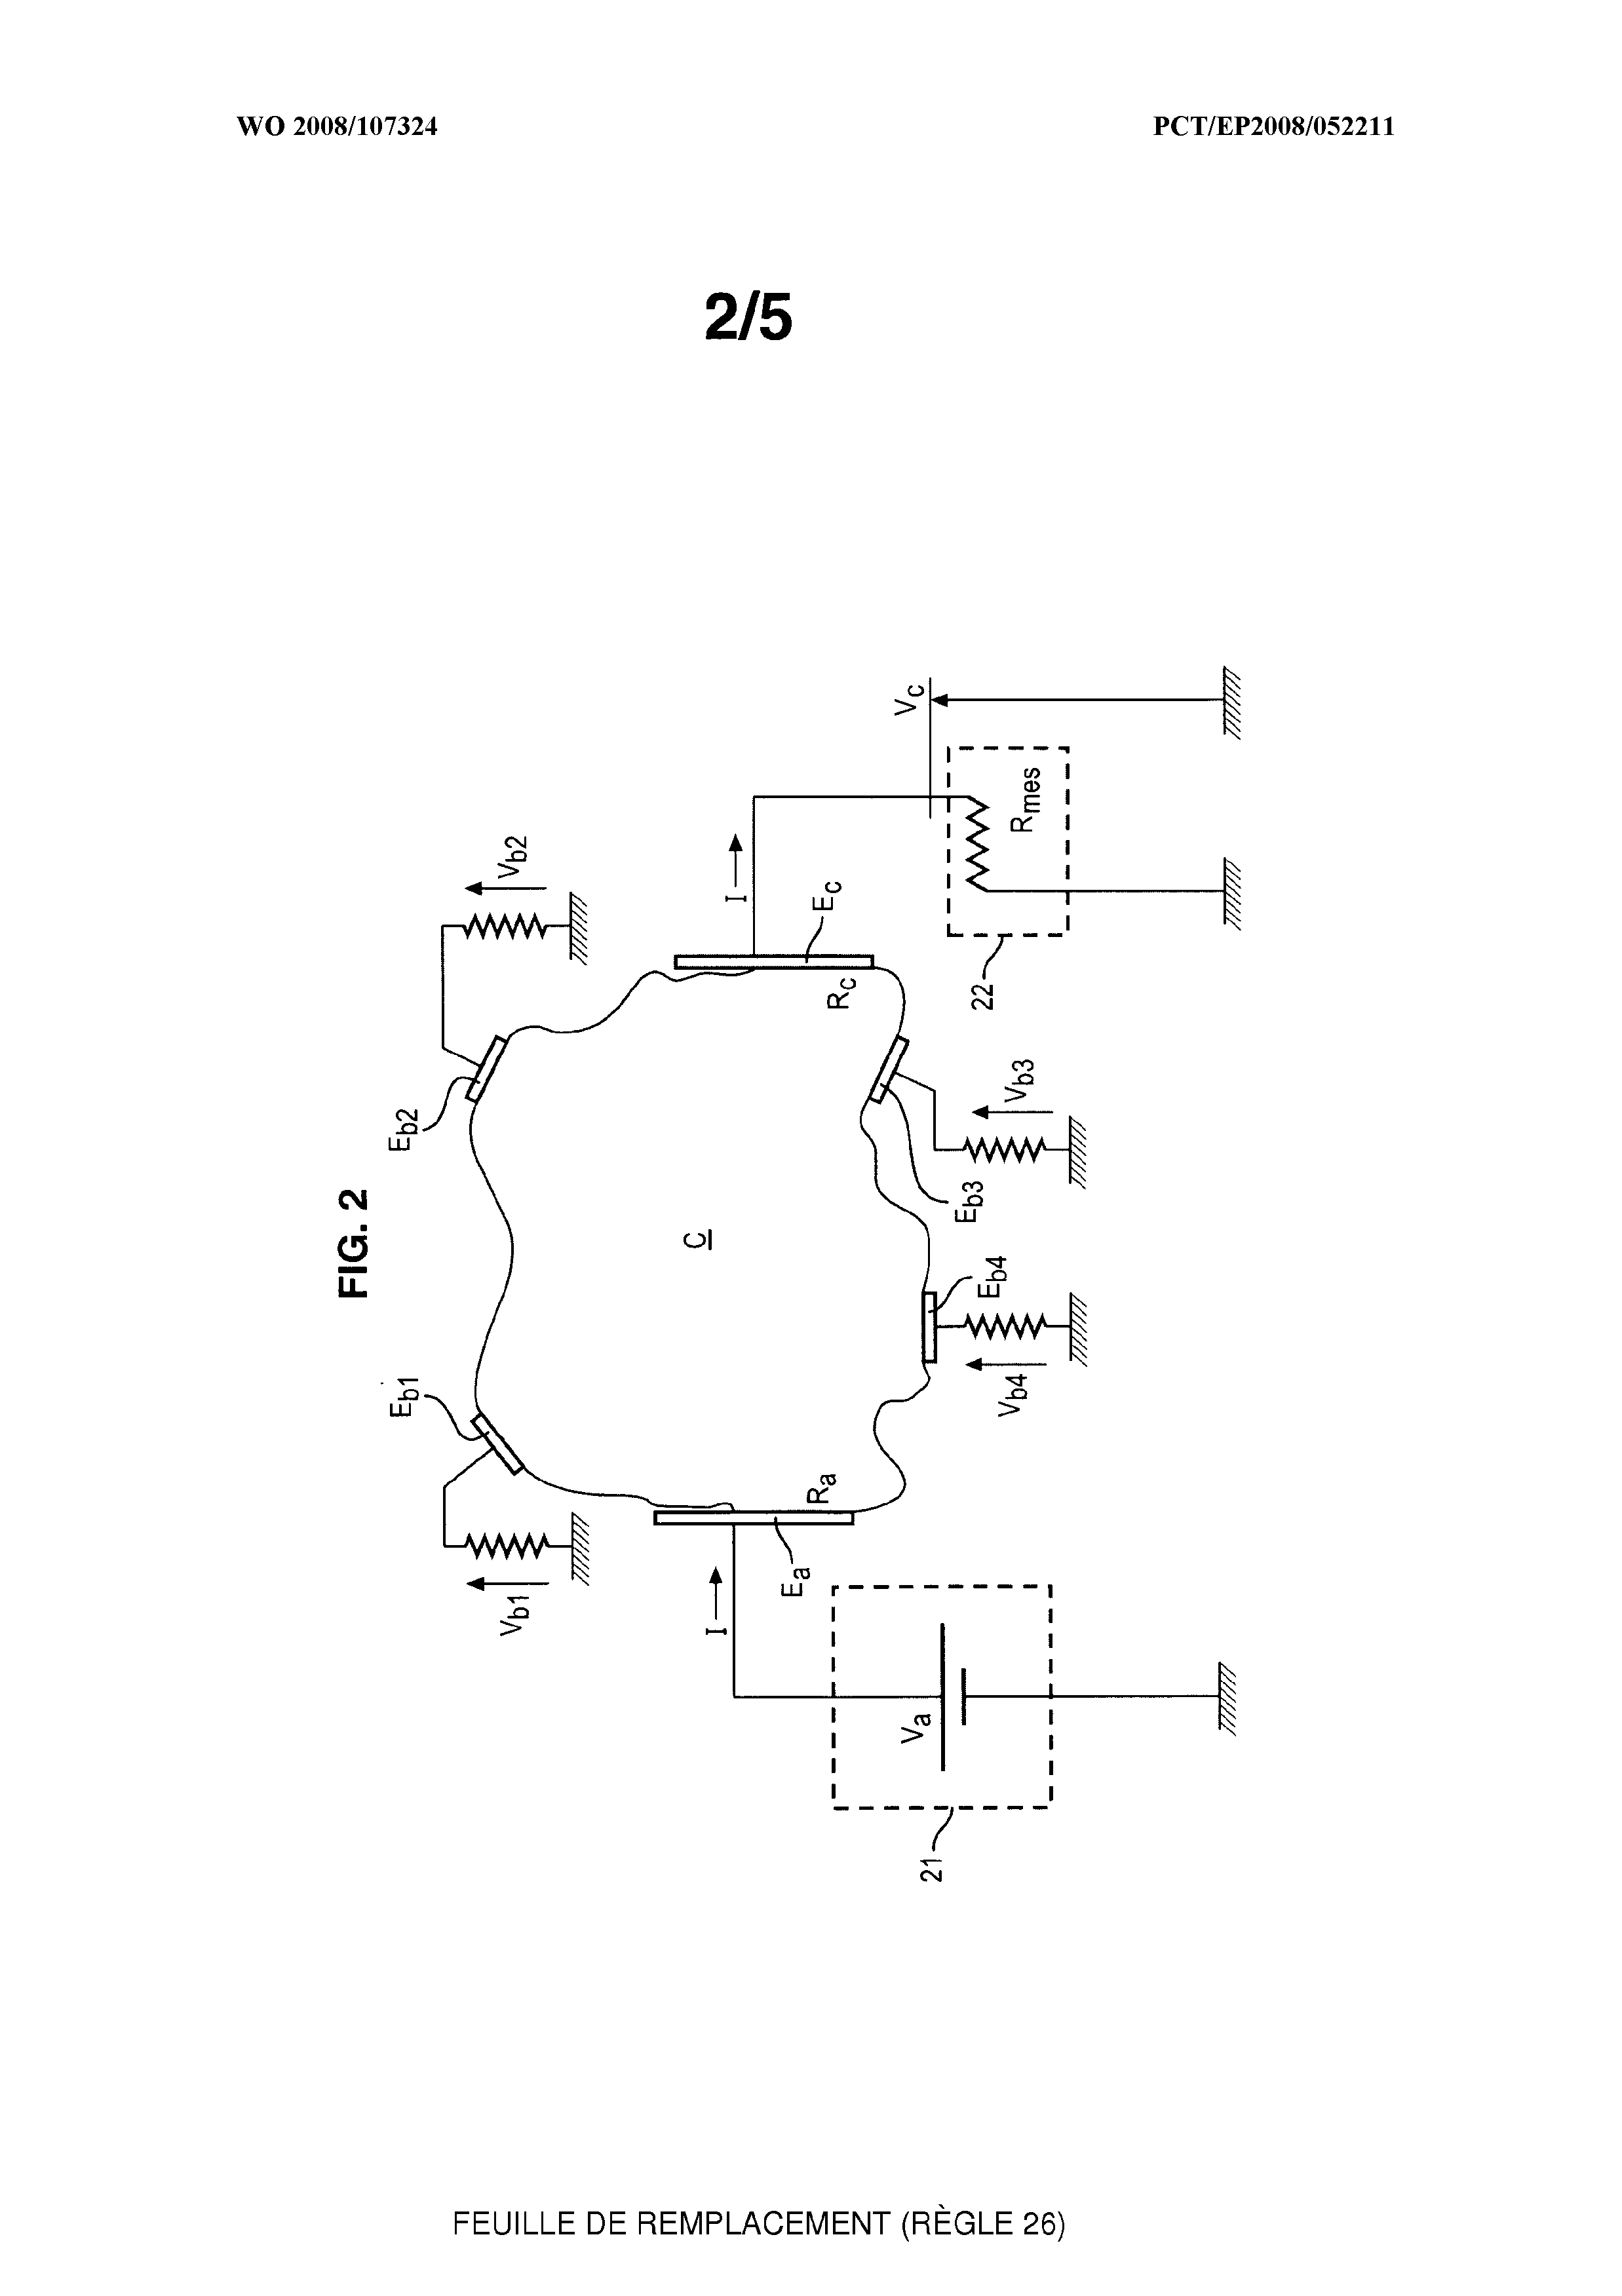 WO 2008/107324 A1 - Electrophysiological Analysis System - The Lens